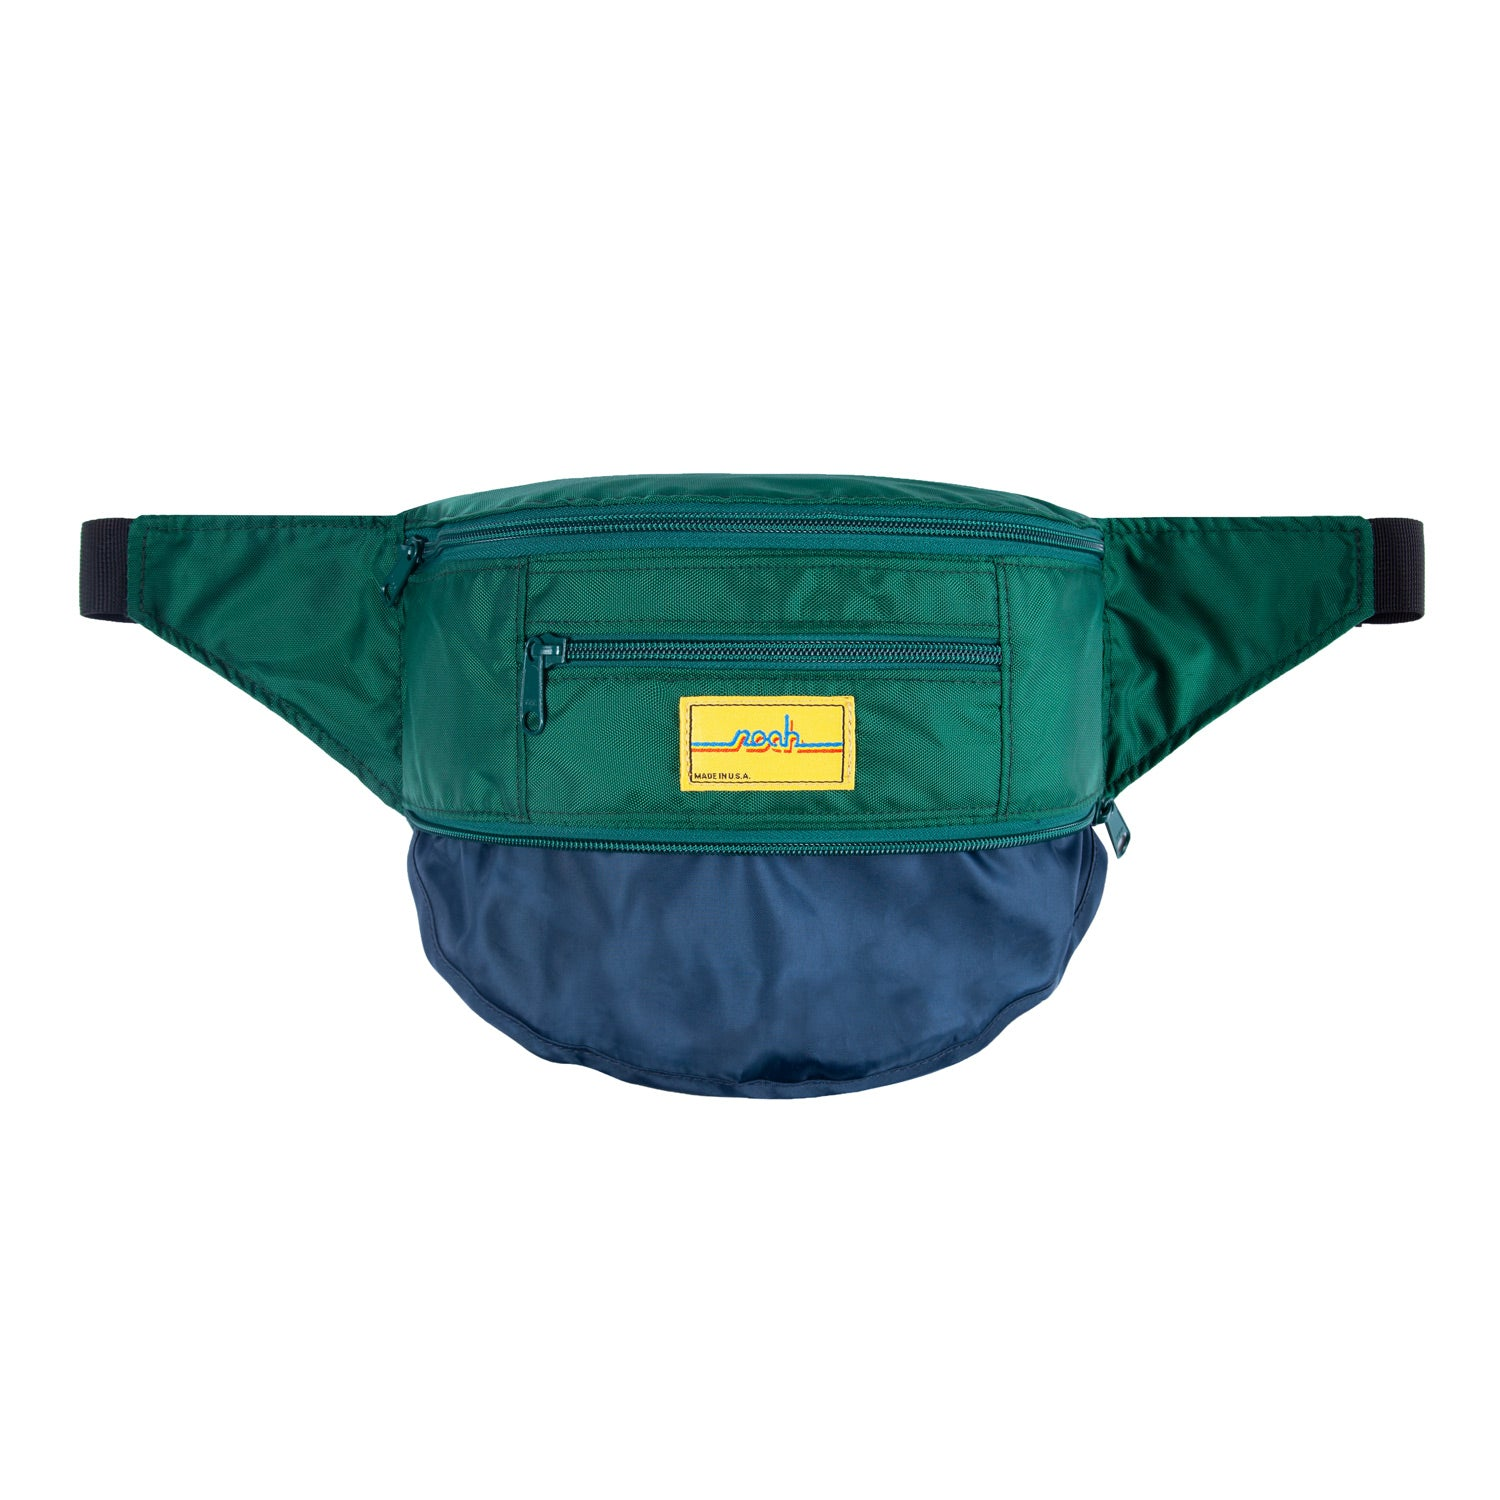 Tri-Zipper Hip Pack